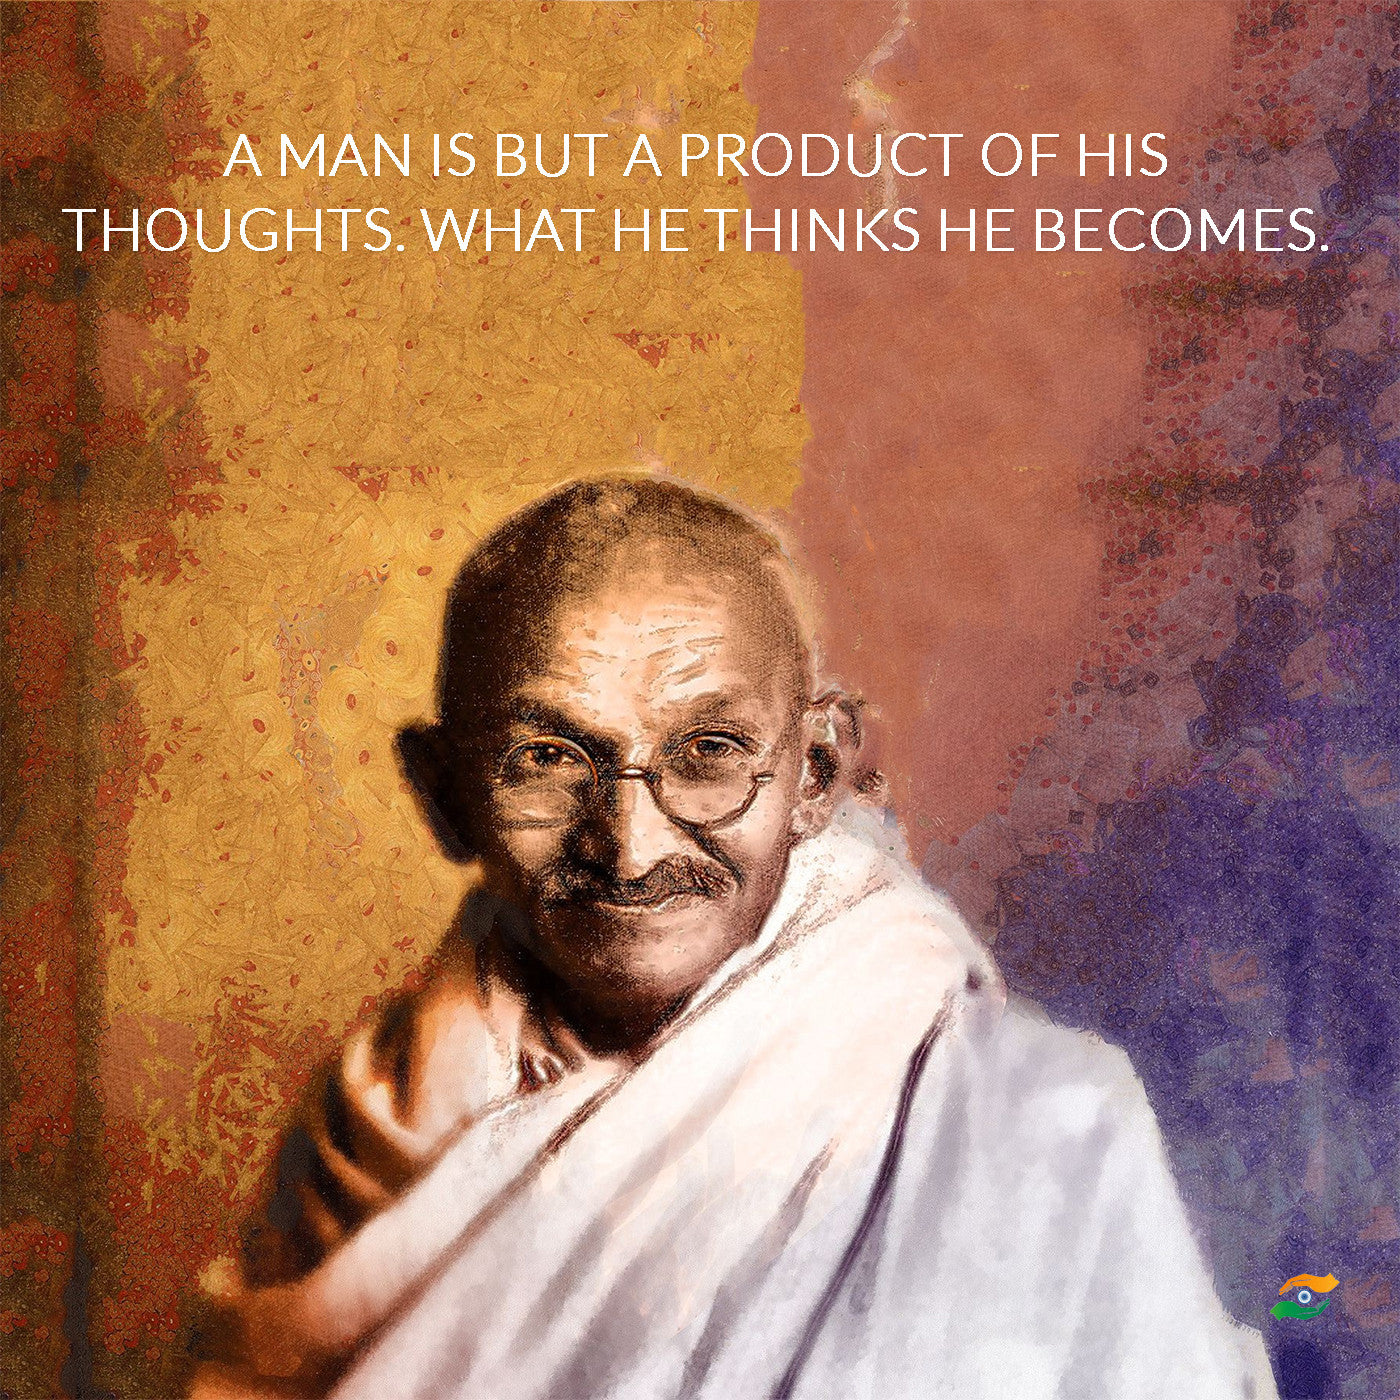 gandhi lifestyle Mahatma gandhi spent his life working for the cause of freeing india from the clutches of british rule, by using noble means and principles of non-violence and satyagrah.